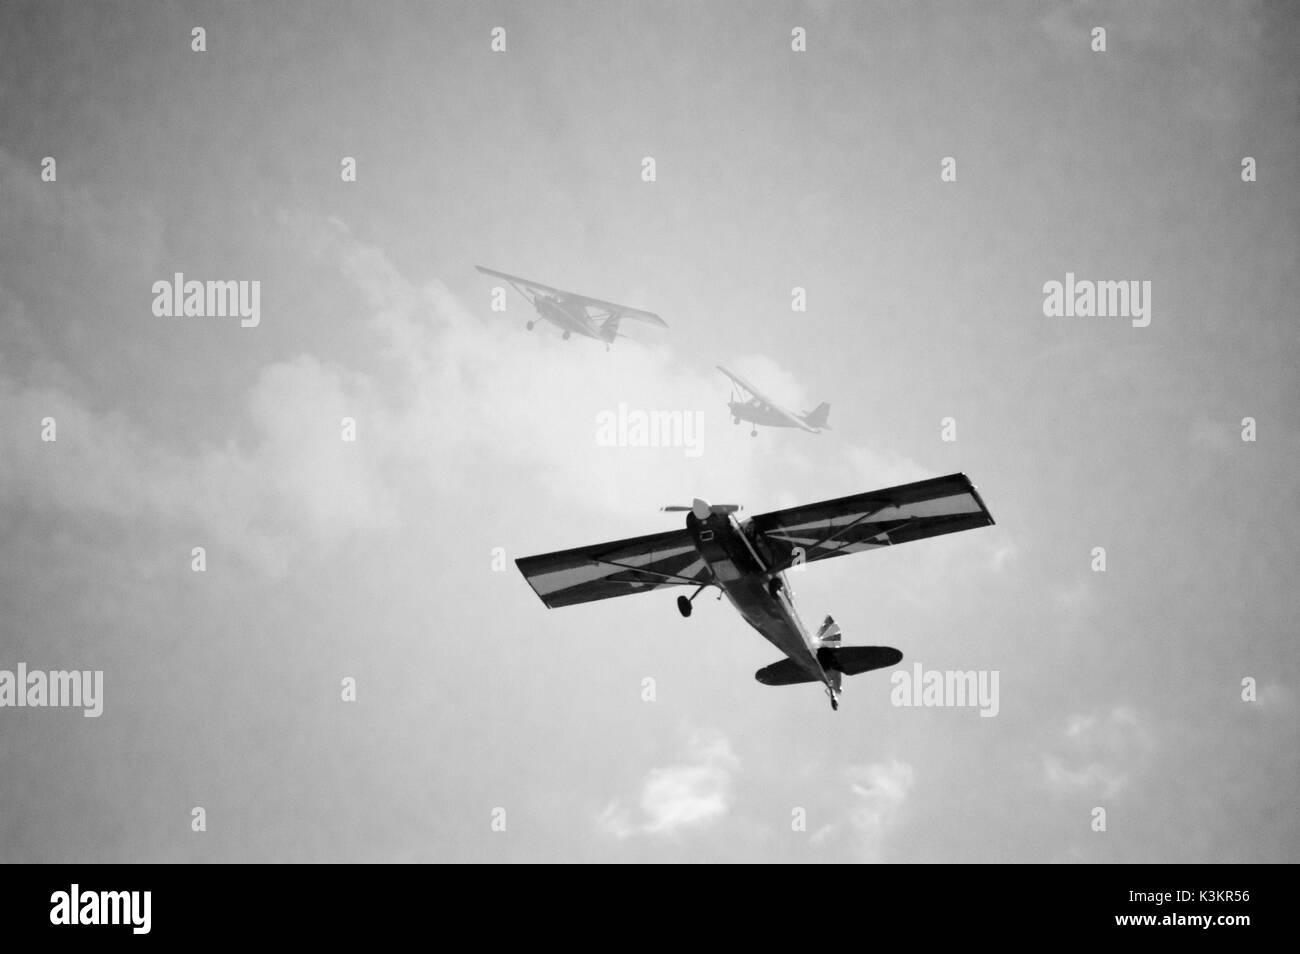 A blue and yellow propeller bi-plane special effects photo showing how it turned in the sky in black and white. - Stock Image